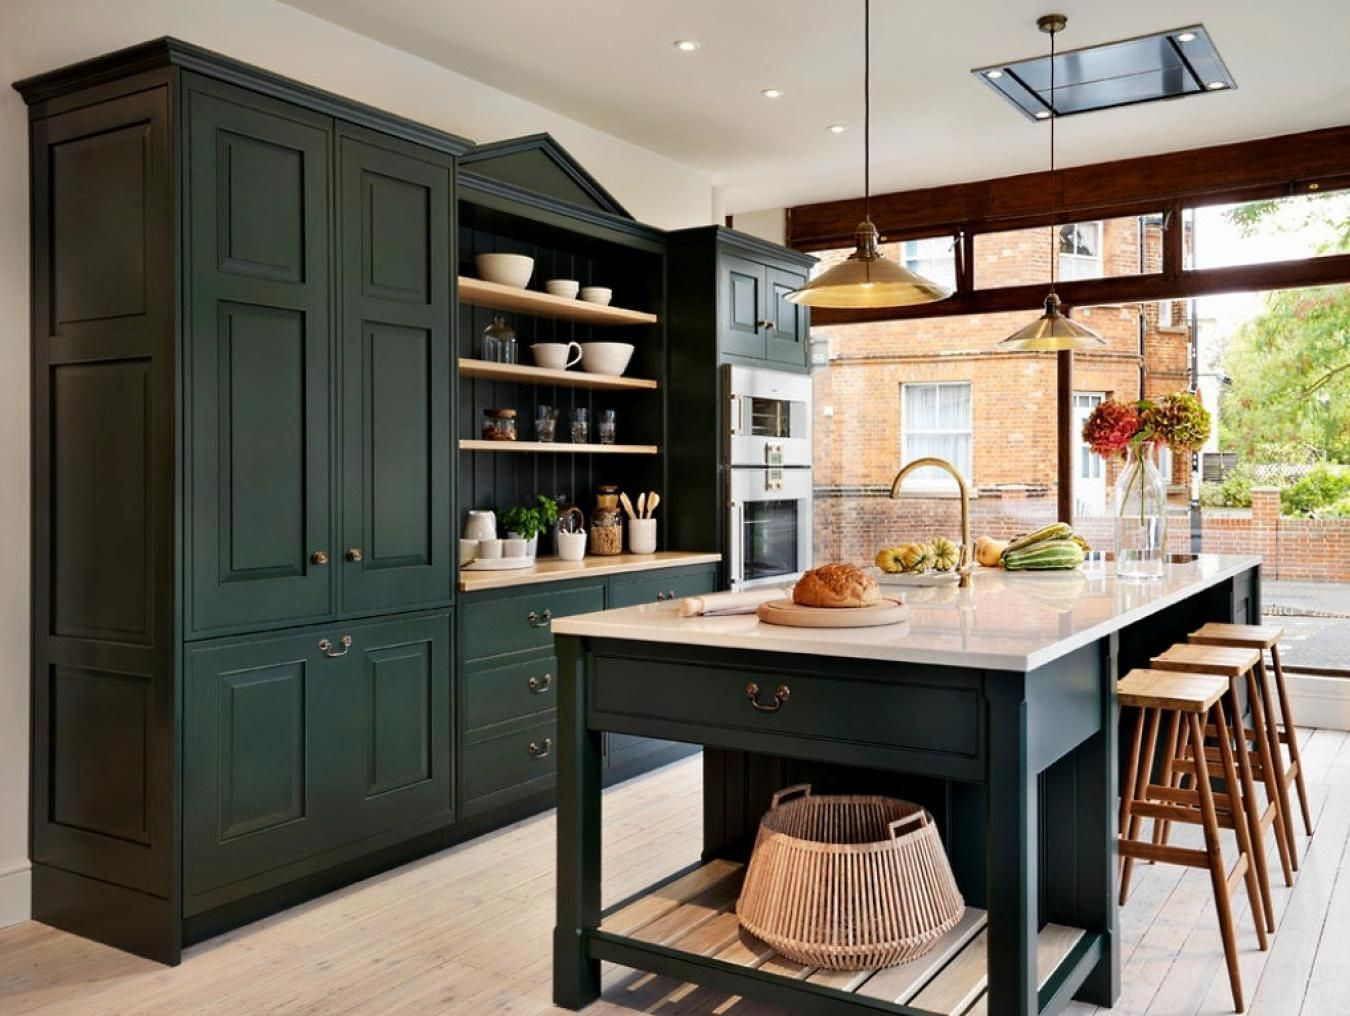 Dark Green Kitchen Storage With A Big Island And Dining Space In A